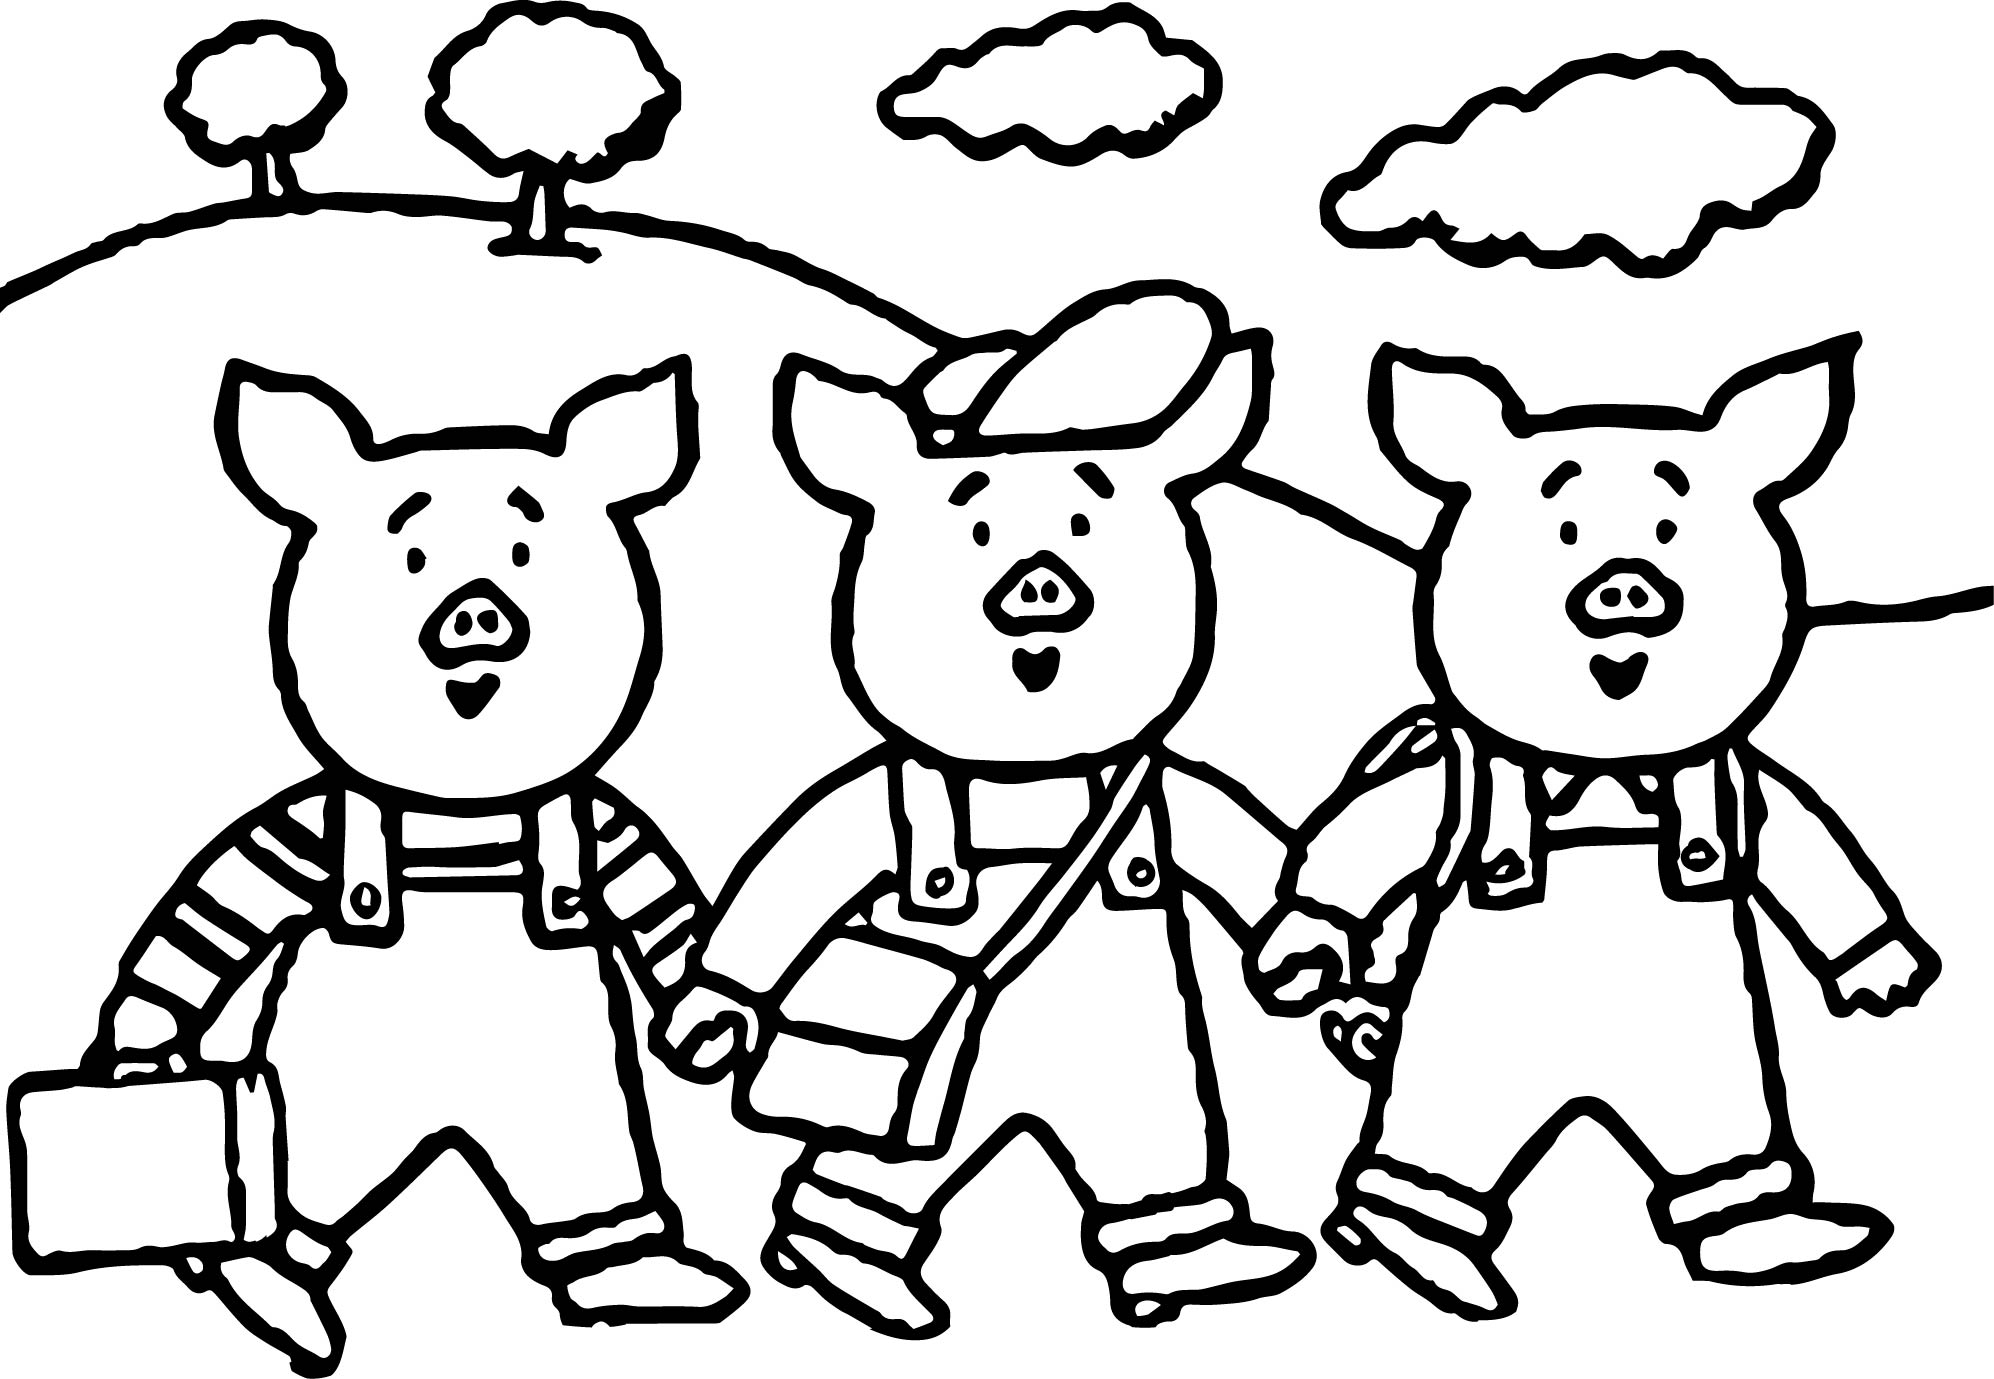 Coloring pages pig - a-k-b.info